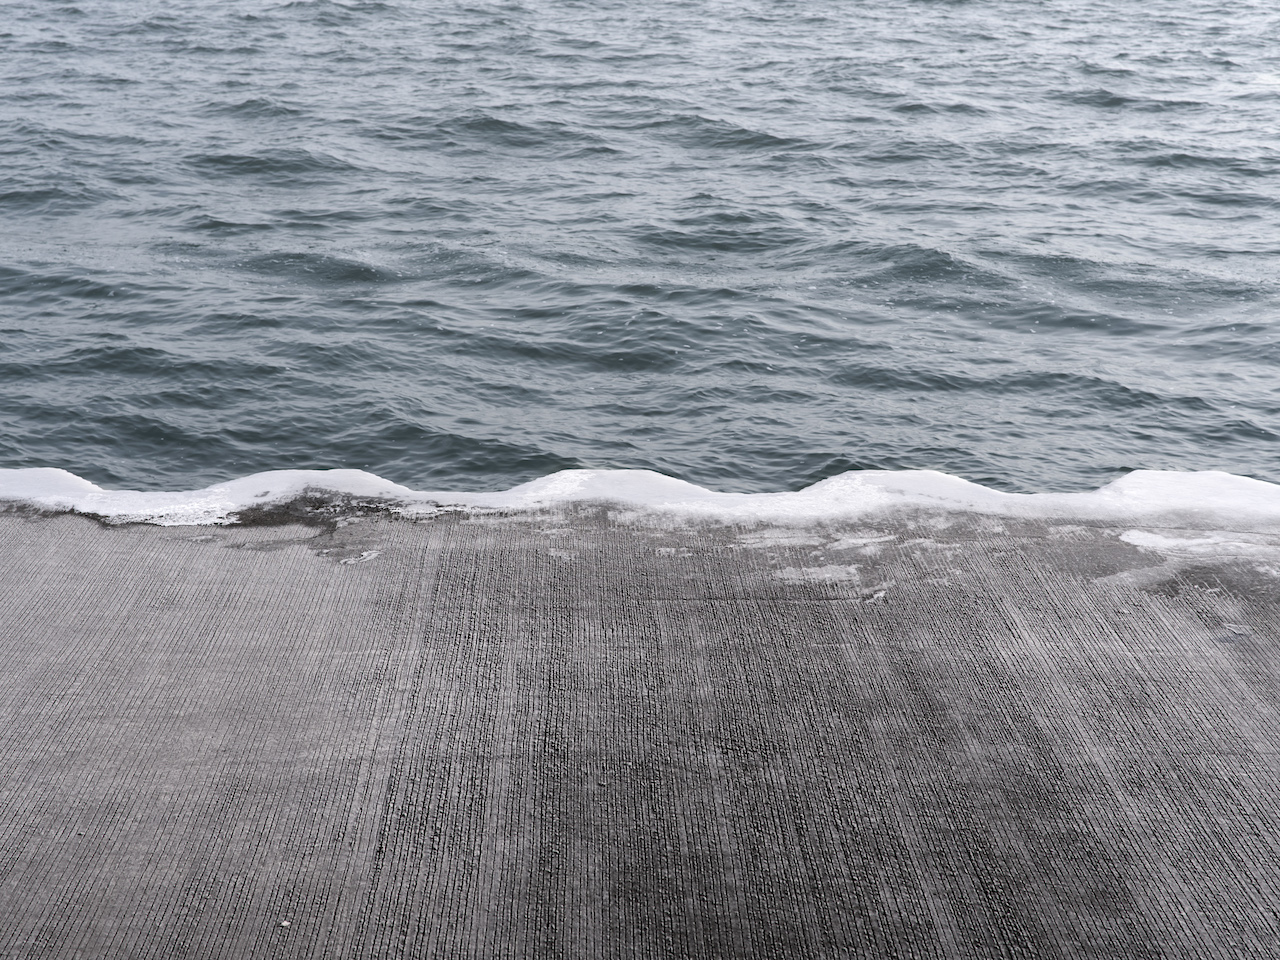 a sliver of ice forms along the edge of the wet concrete that sits at waters edge